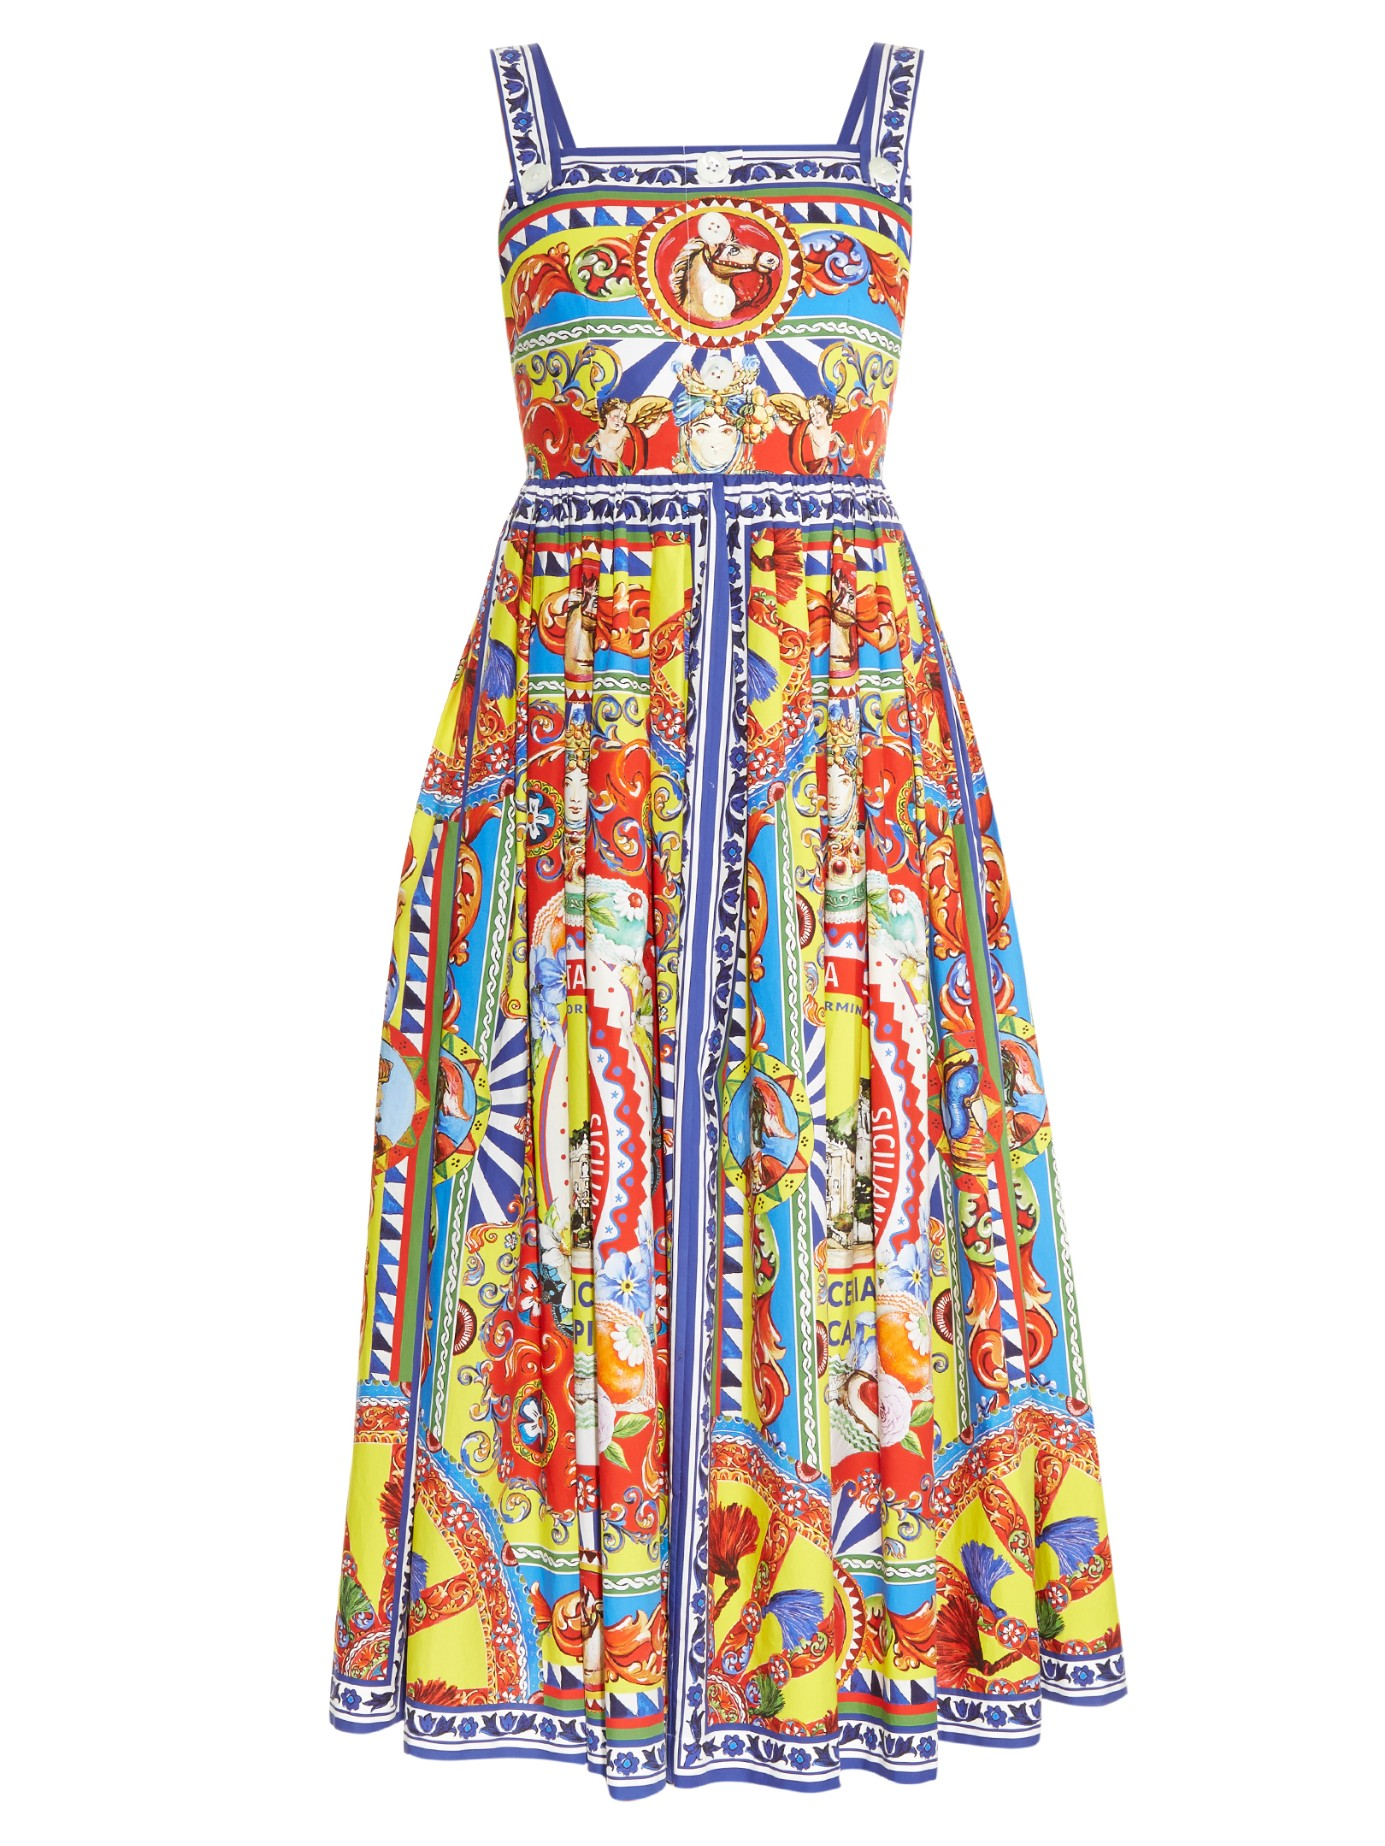 Dolce and Gabbana Dresses On Sale,Dolce and Gabbana Dresses,dolce and gabbana dress,dolce and gabbana dress,